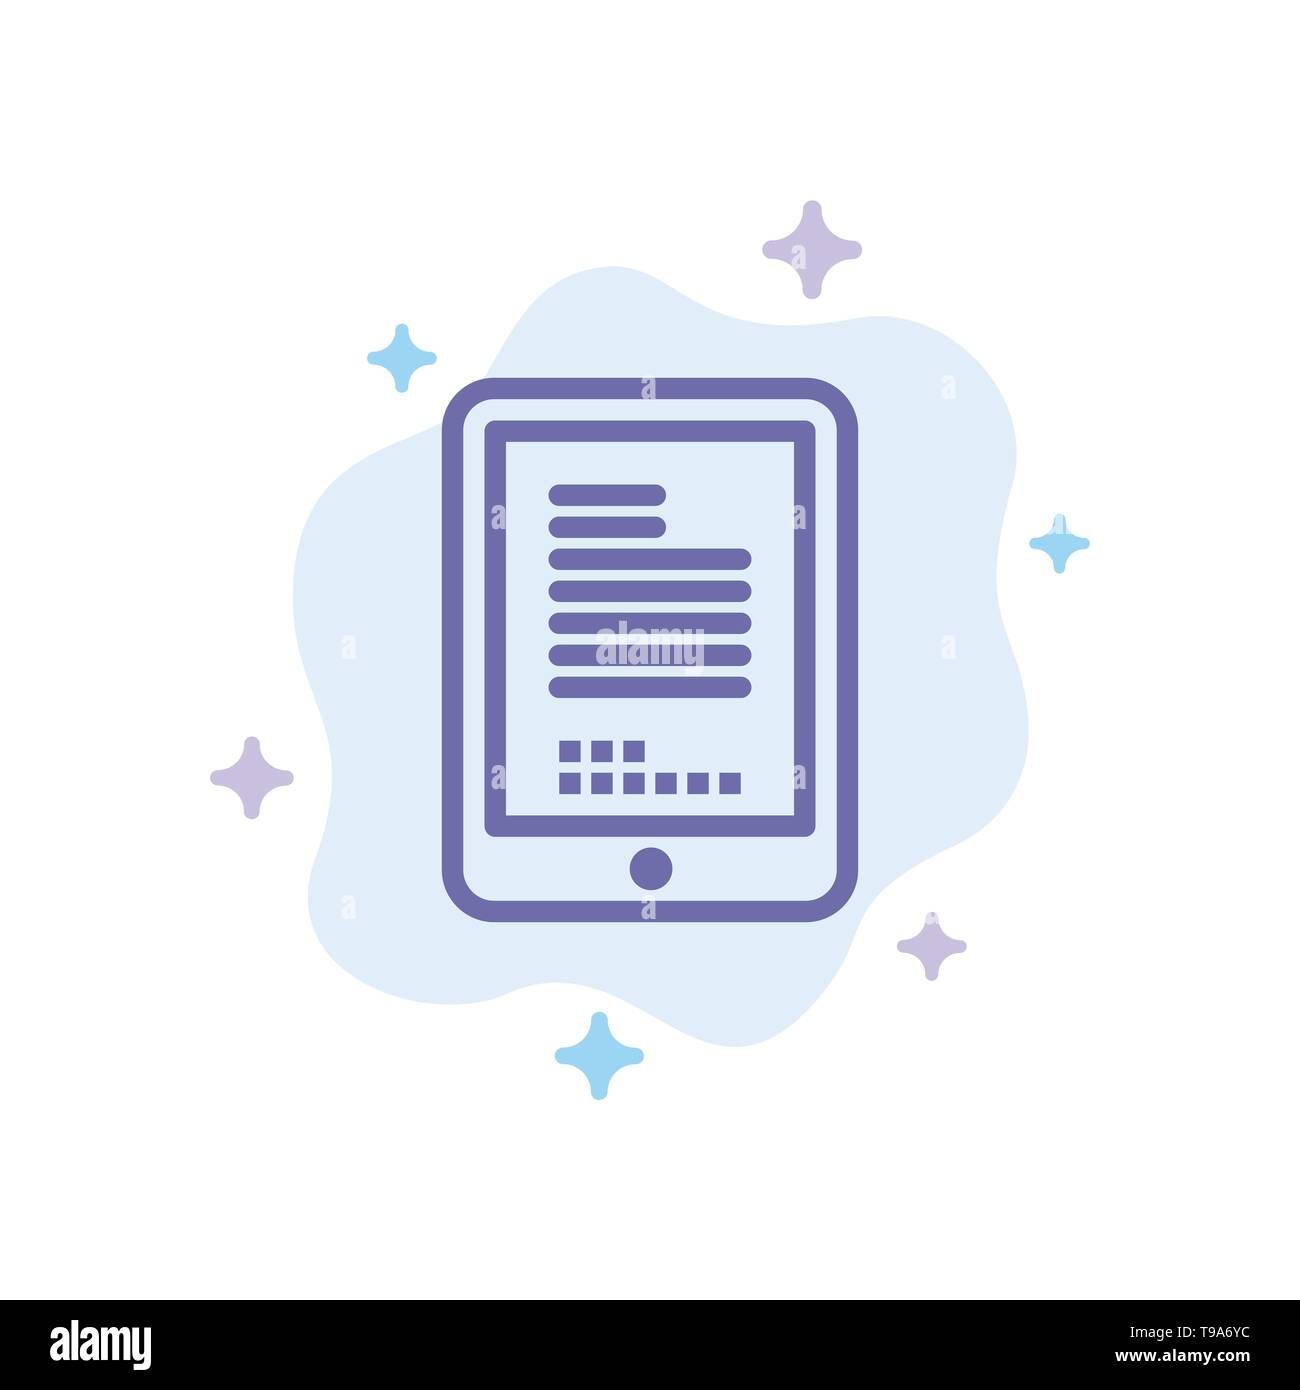 Mobile, Coding, Hardware, Cell Blue Icon on Abstract Cloud Background - Stock Image